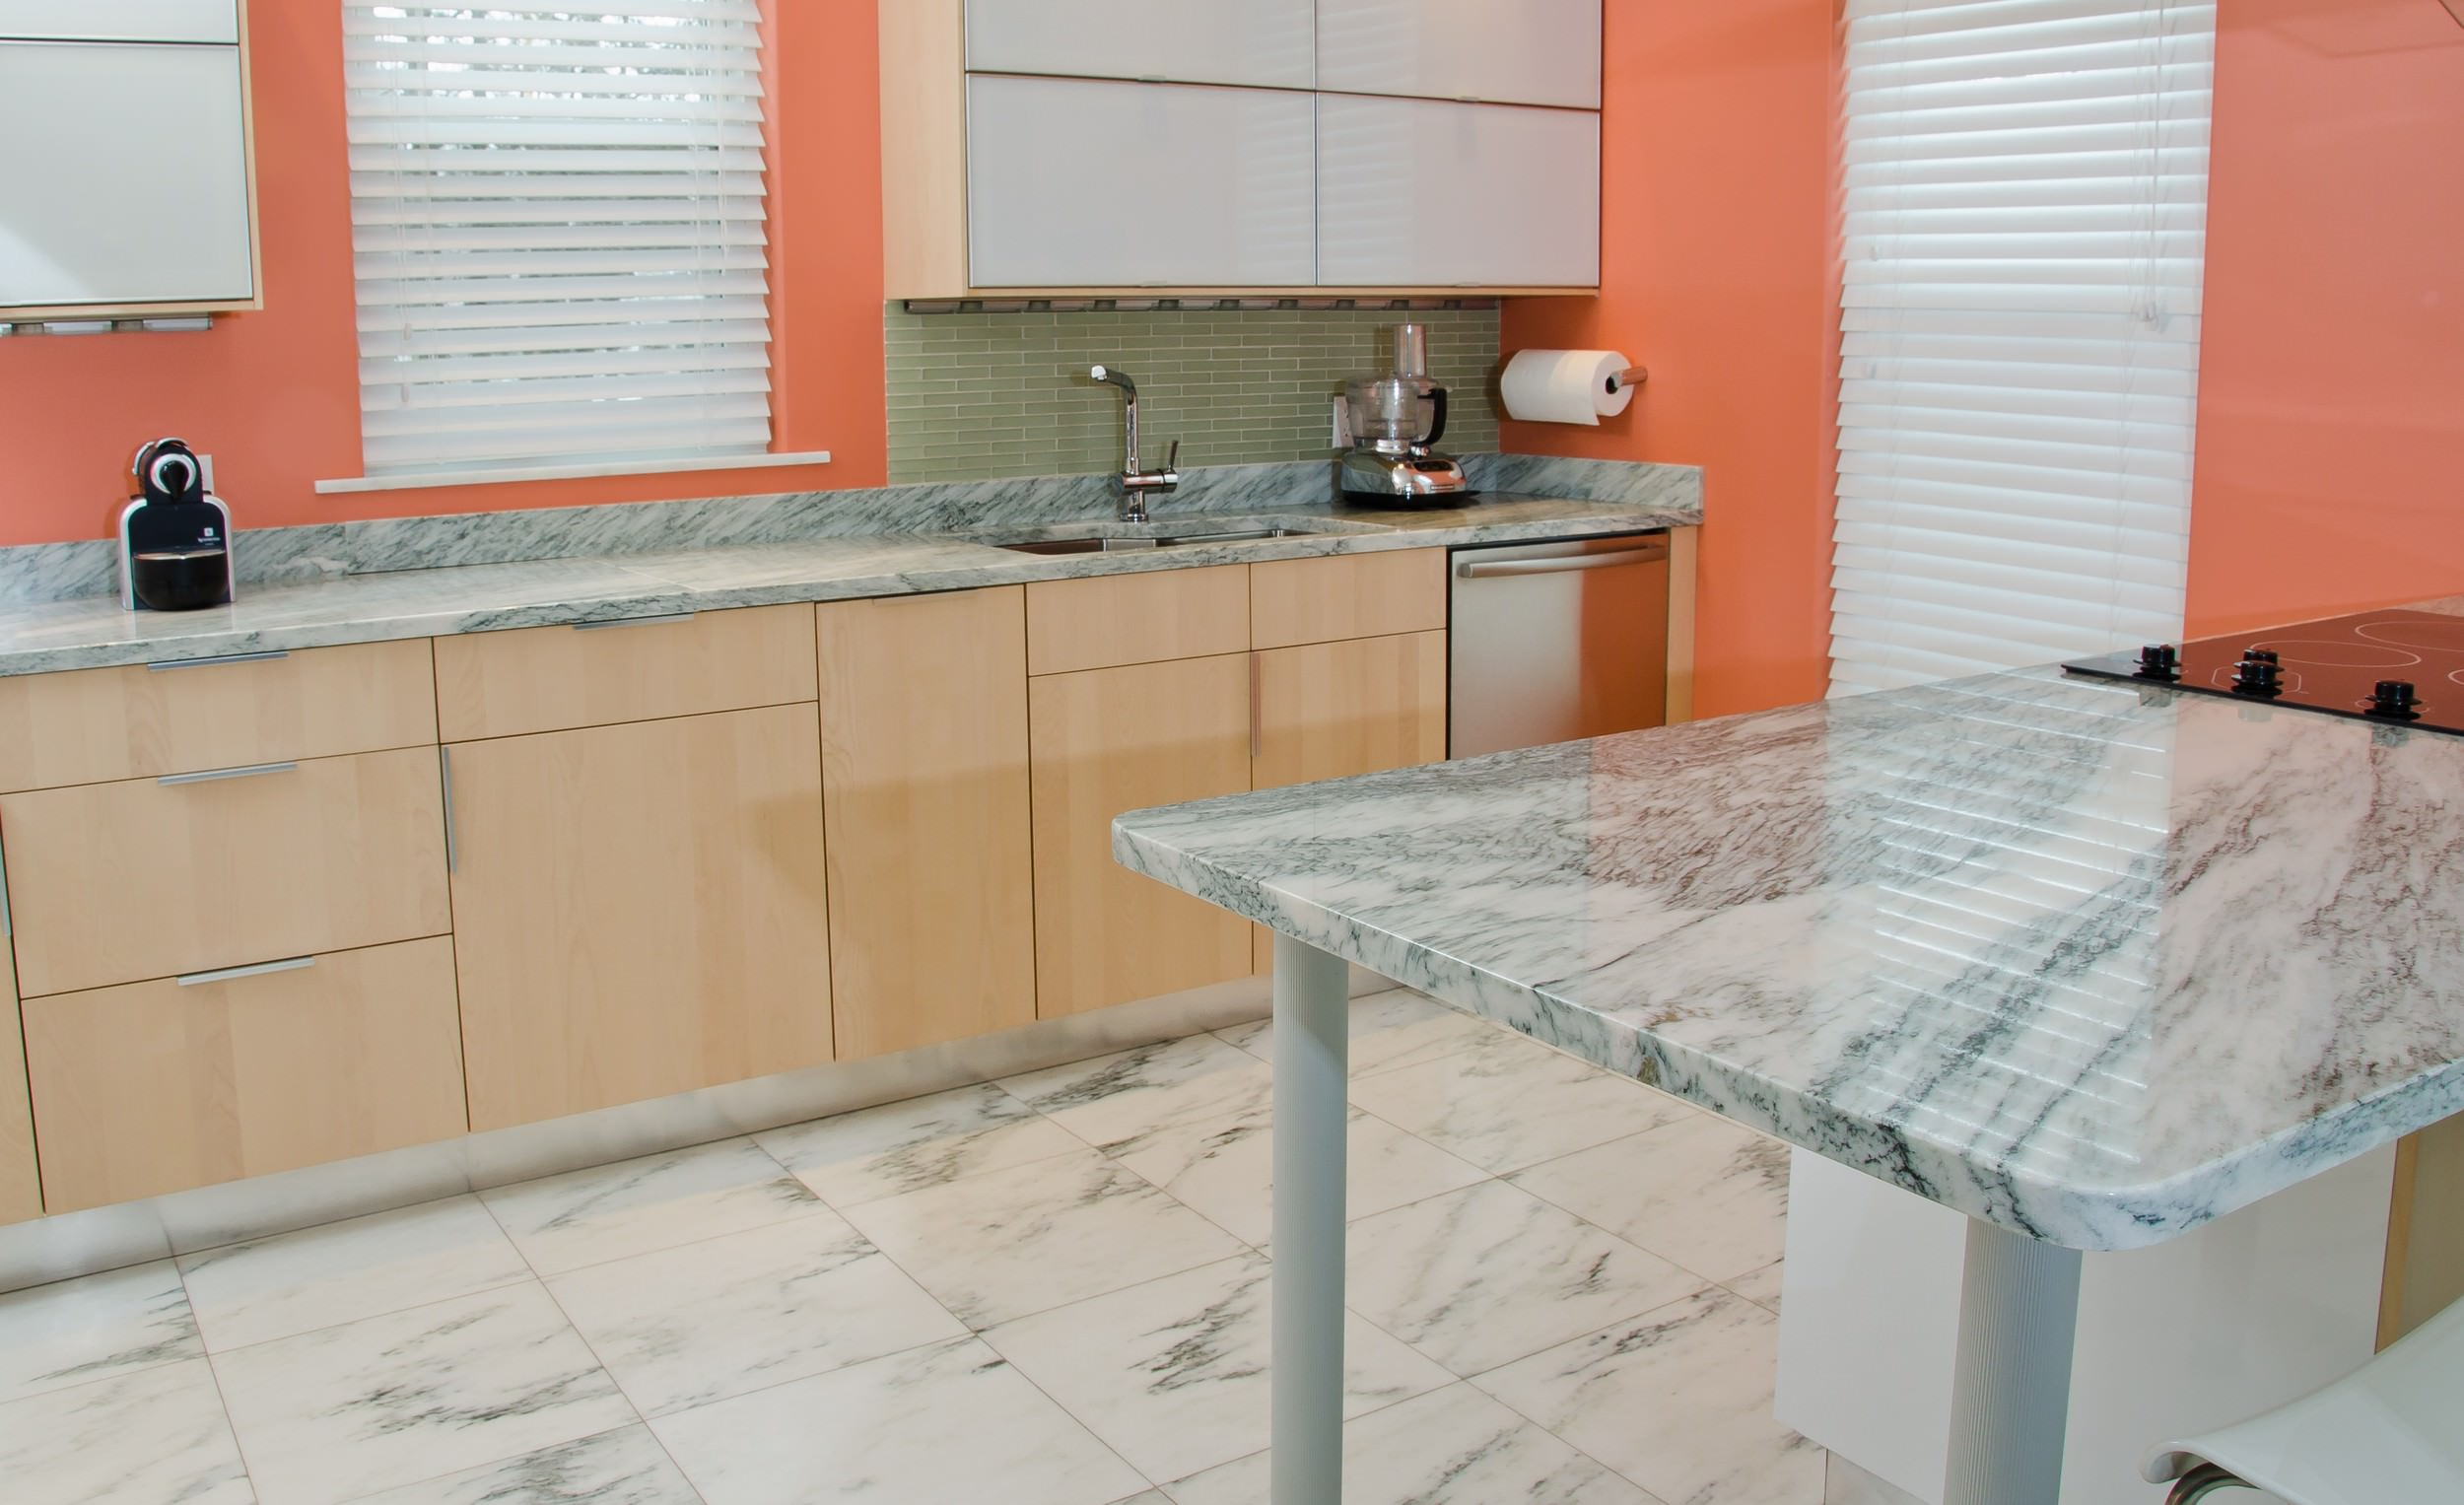 bathroom kitchen montgomery countertops quartz tampa samples pricing pictures cambria